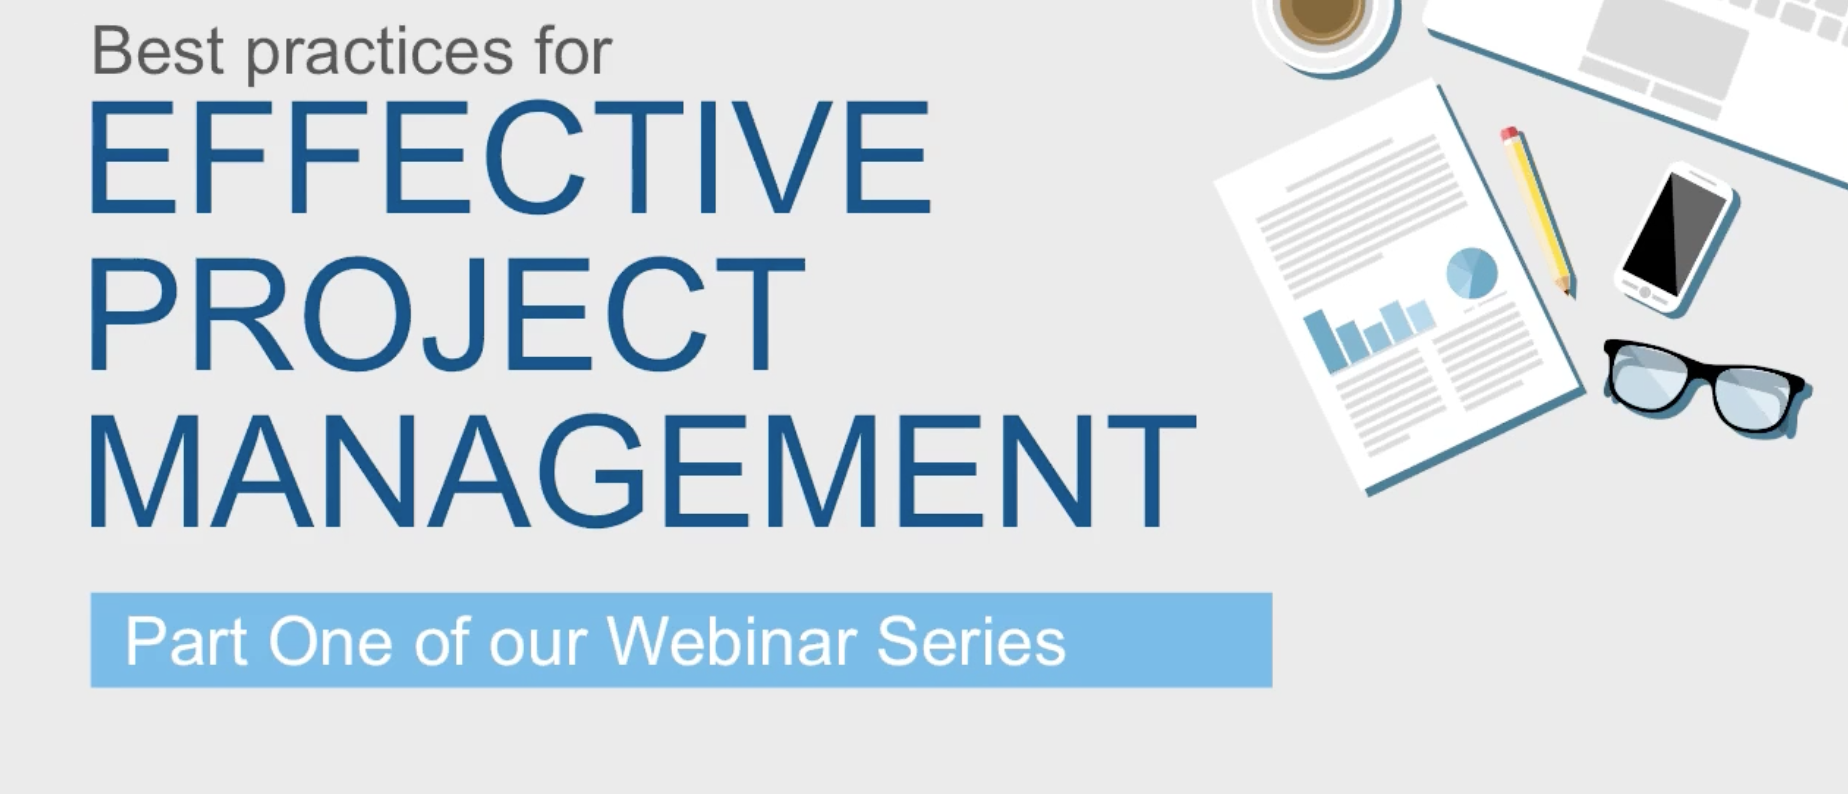 best-practices-project-management-webinar.png